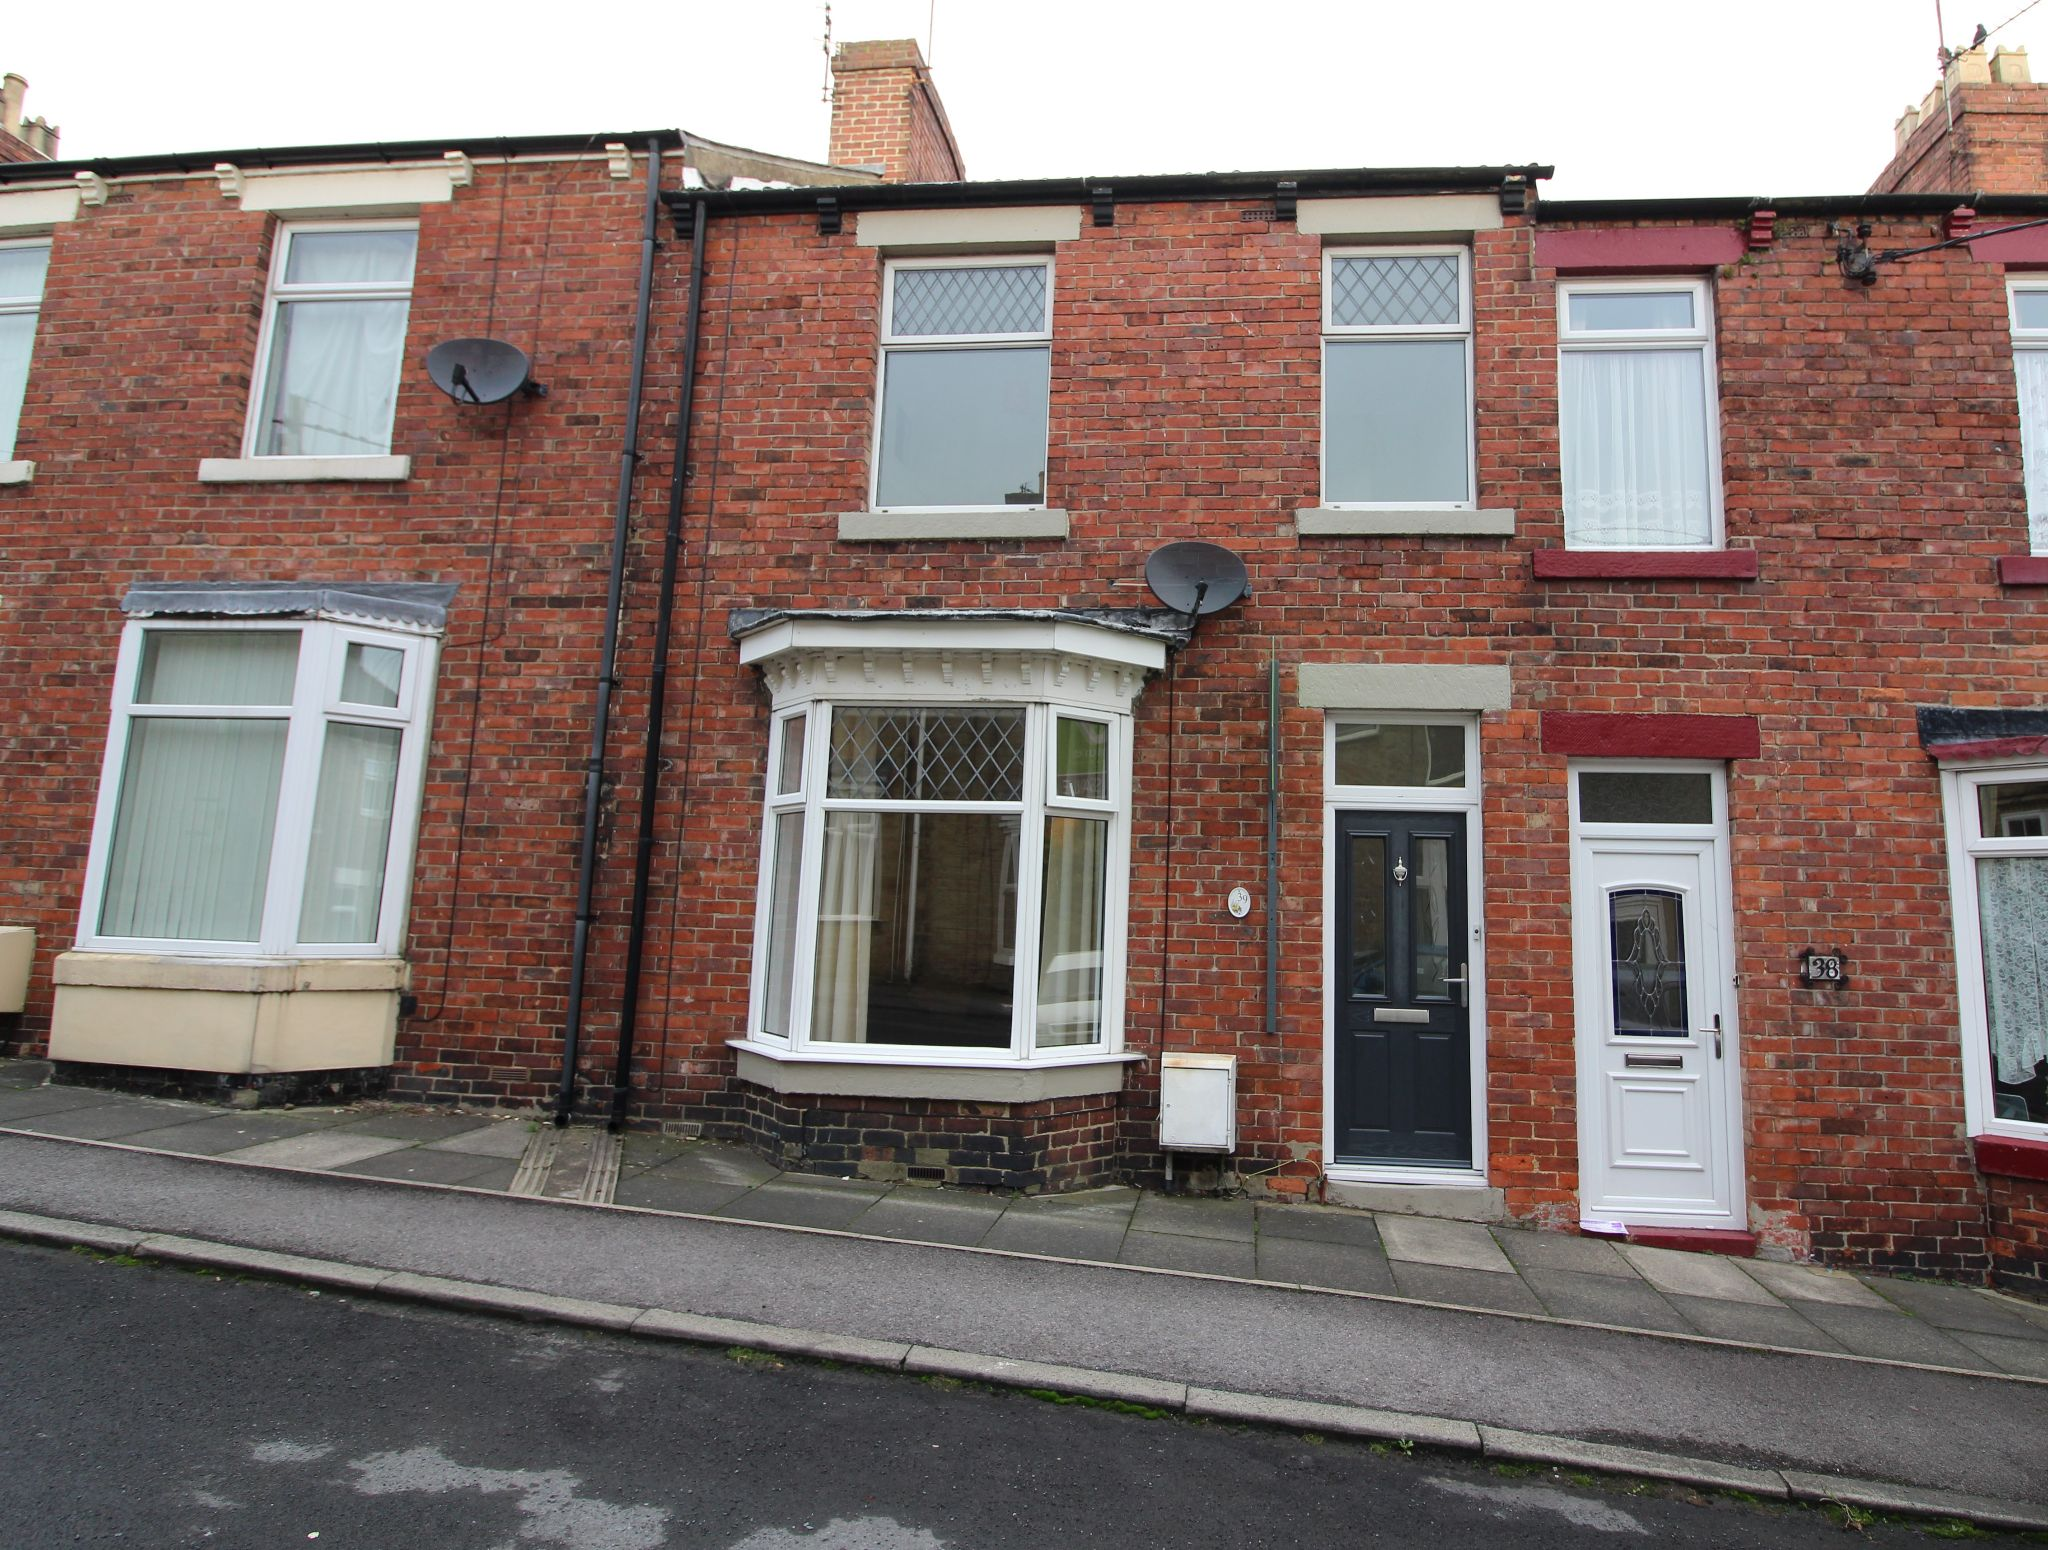 3 bedroom mid terraced house For Sale in Crook - Photograph 44.